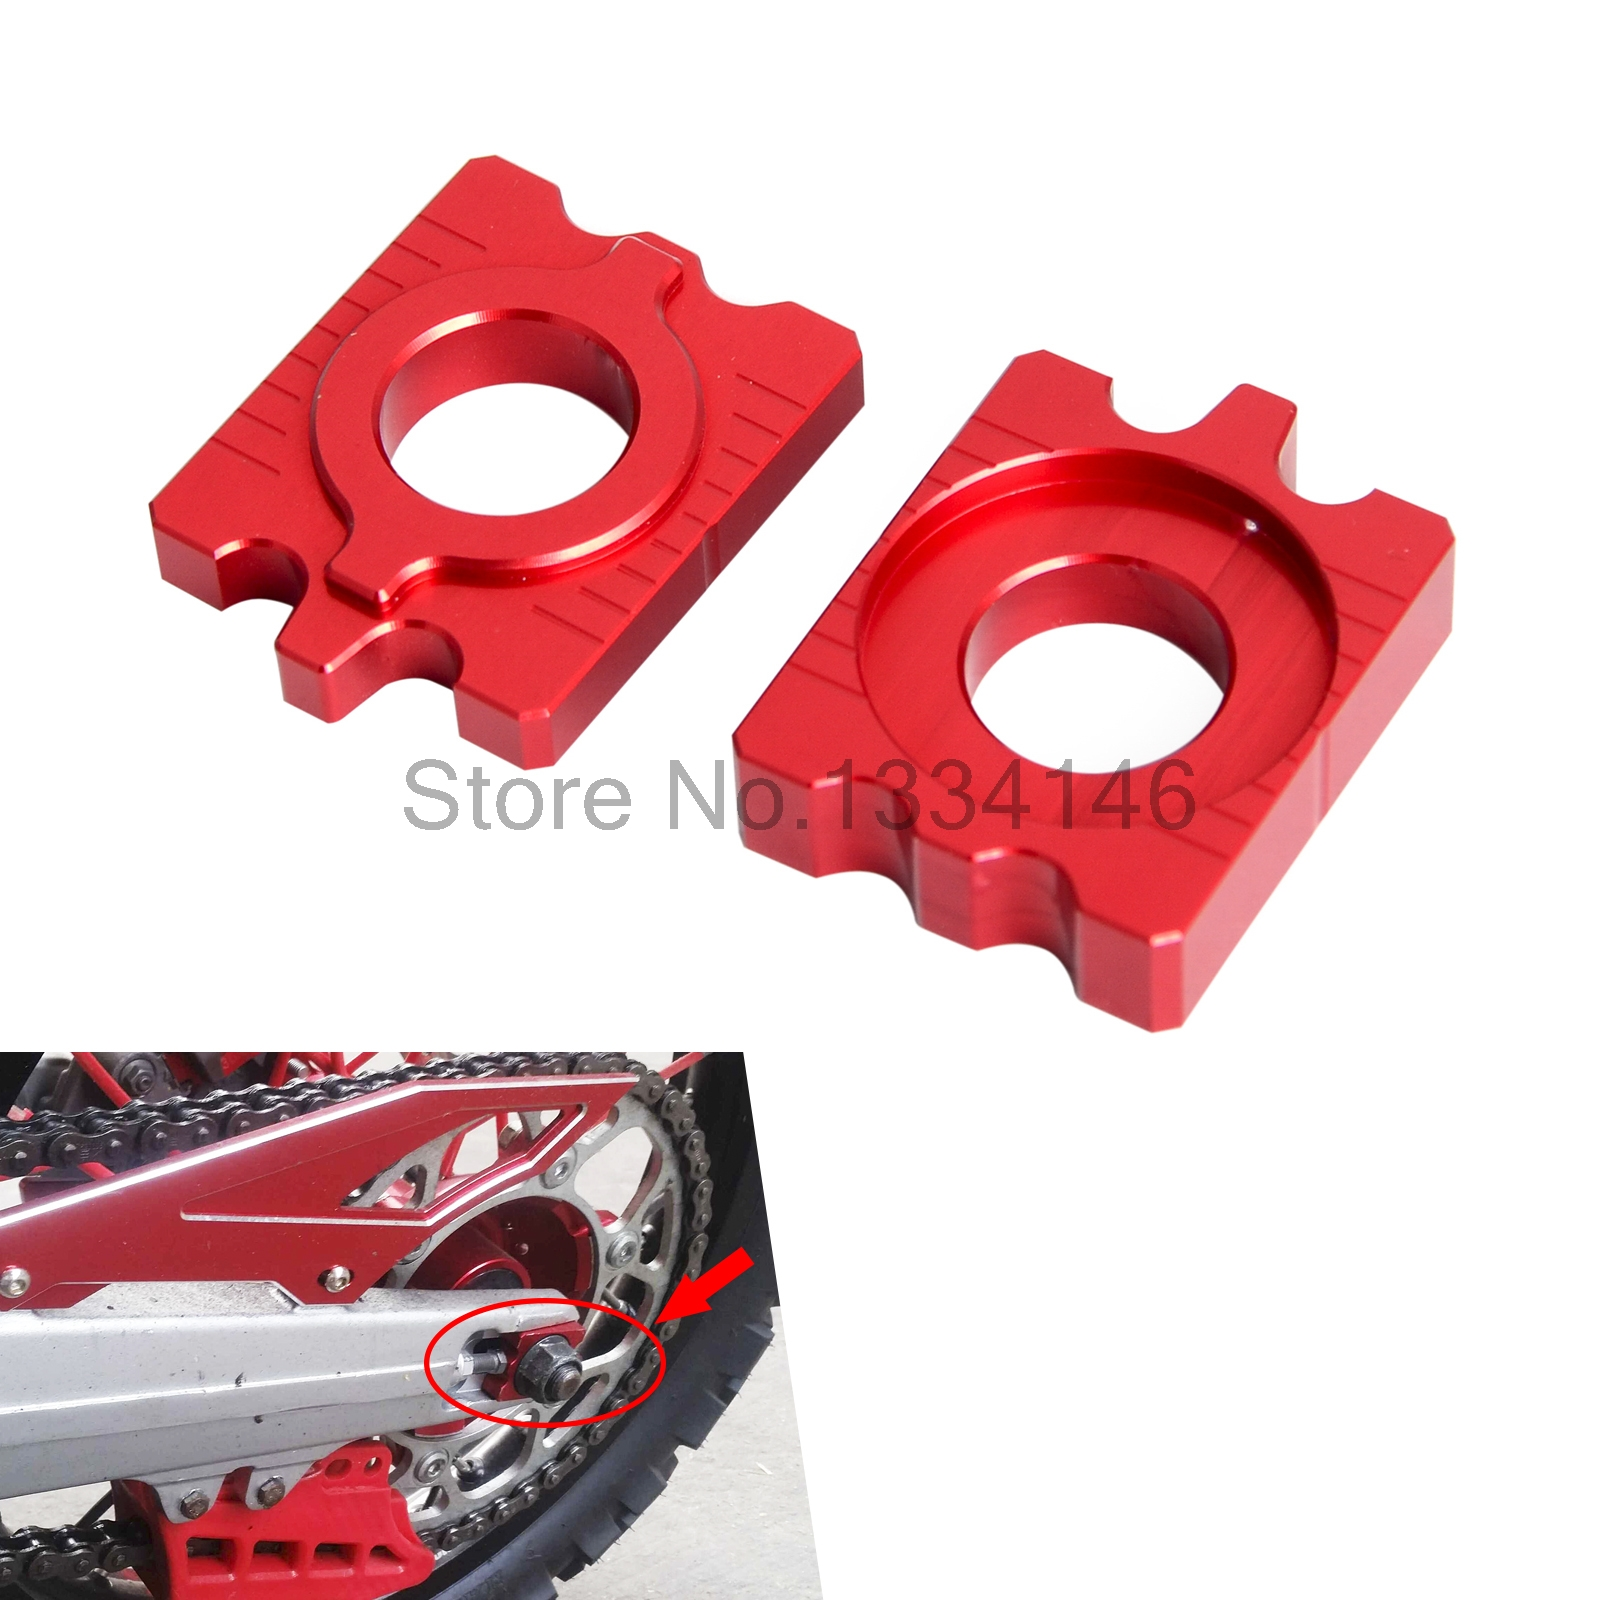 Rear Axle Block Chain Adjuster For Honda CRF250L CRF250M 2012-2015 2013 2014 15 Motocross Supermoto Dirt Bike partol black car roof rack cross bars roof luggage carrier cargo boxes bike rack 45kg 100lbs for honda pilot 2013 2014 2015